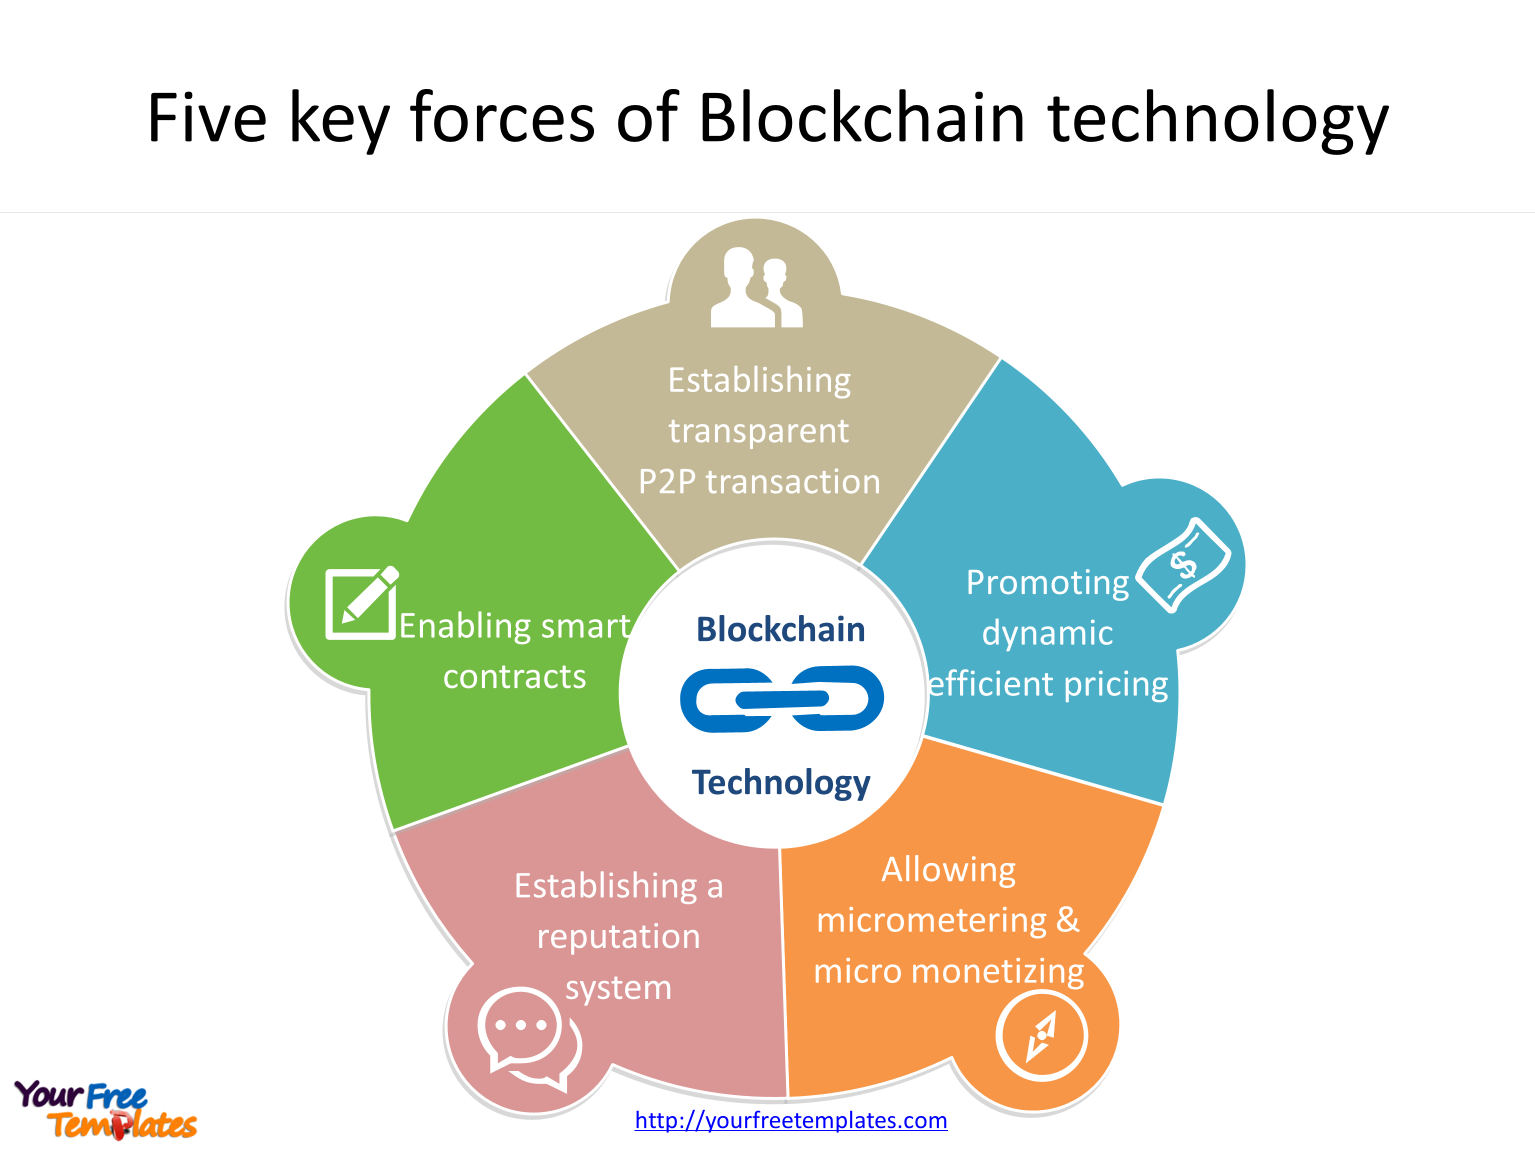 Block chain technology with 5 key forces important to the technology